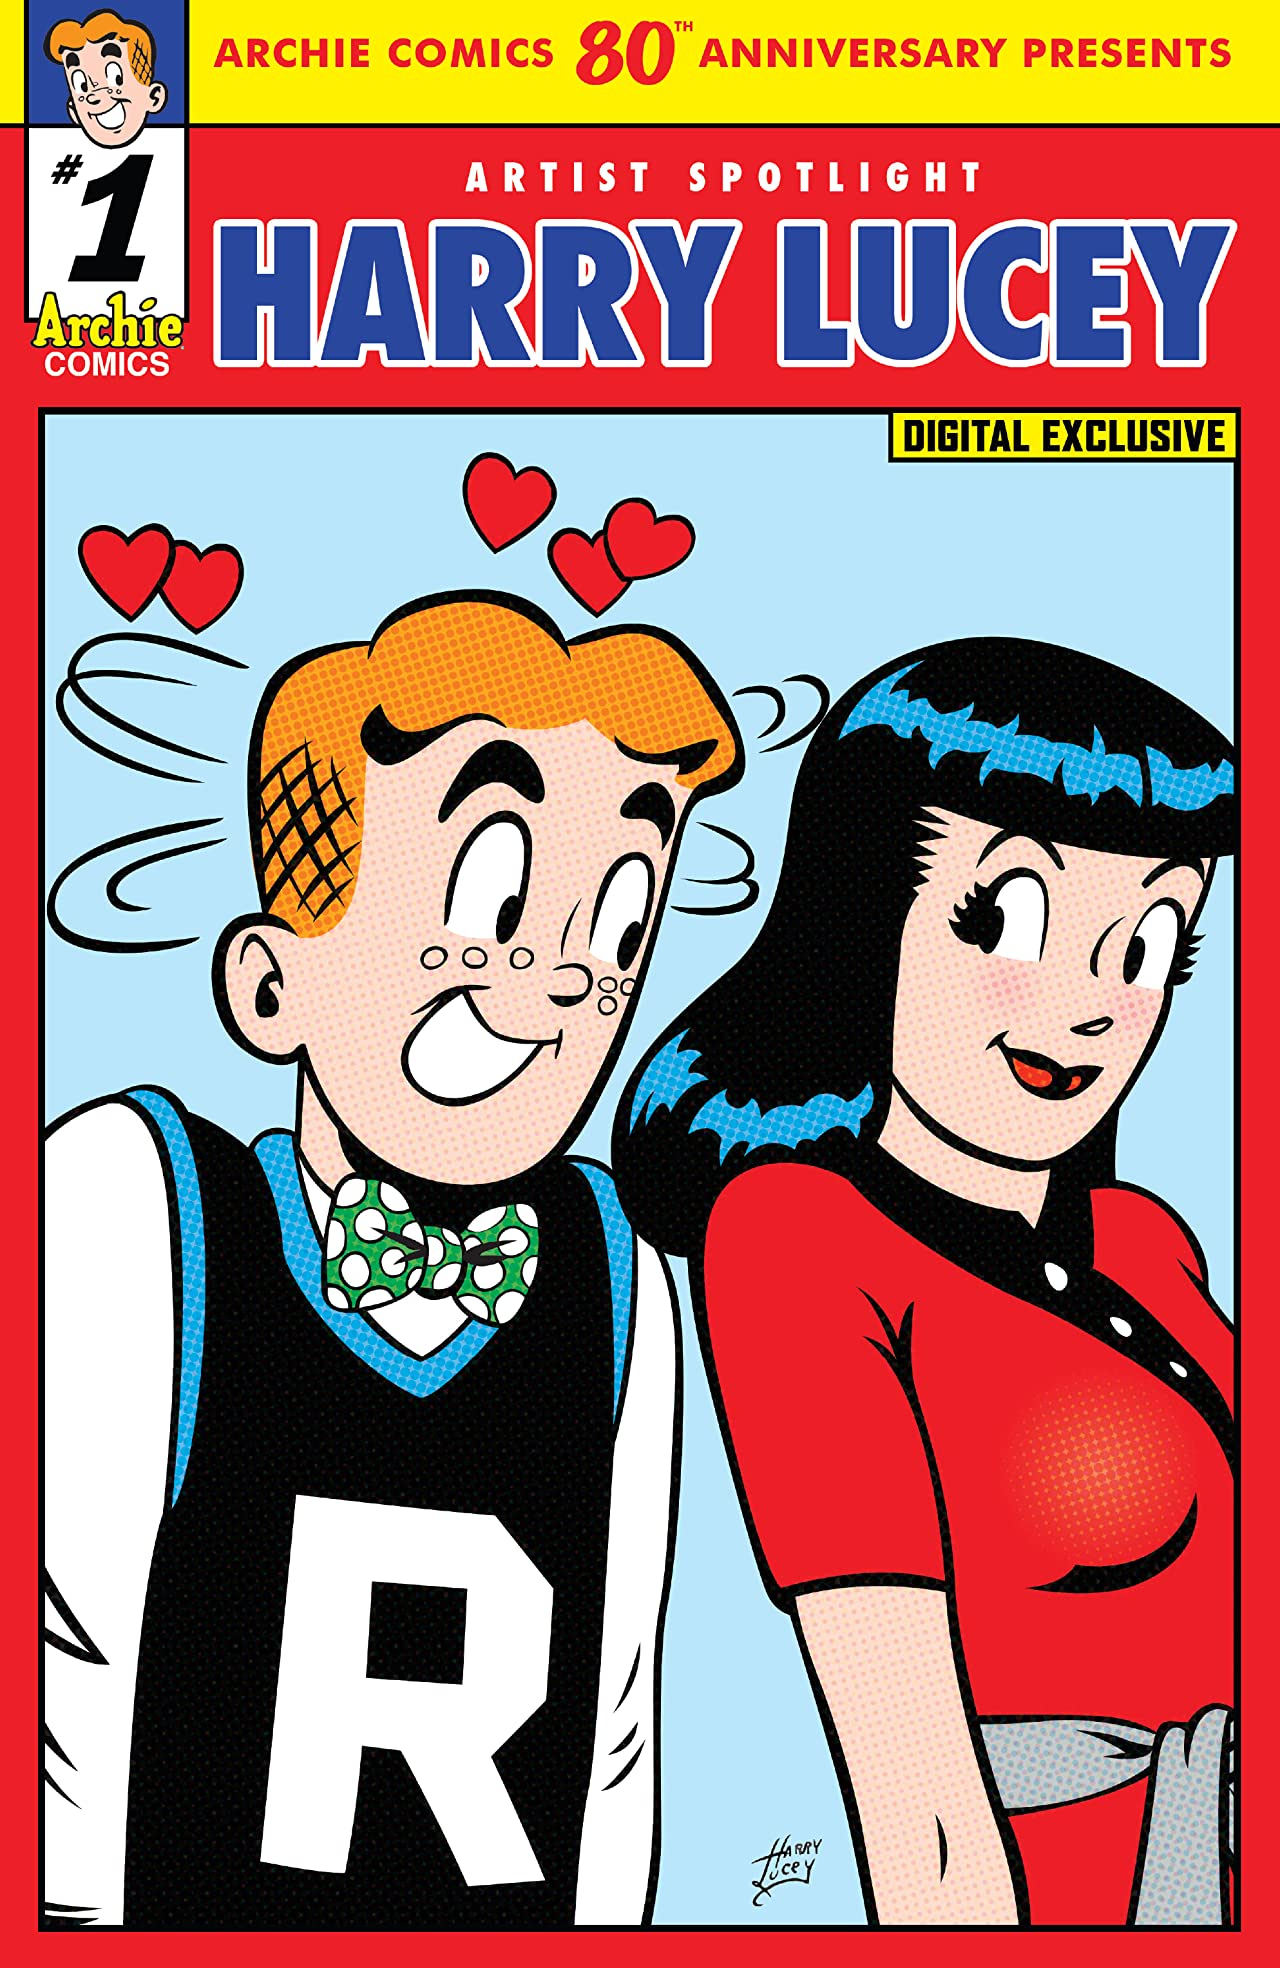 Archie Comics 80th Anniversary Presents Artist Spotlight - Harry Lucey #11